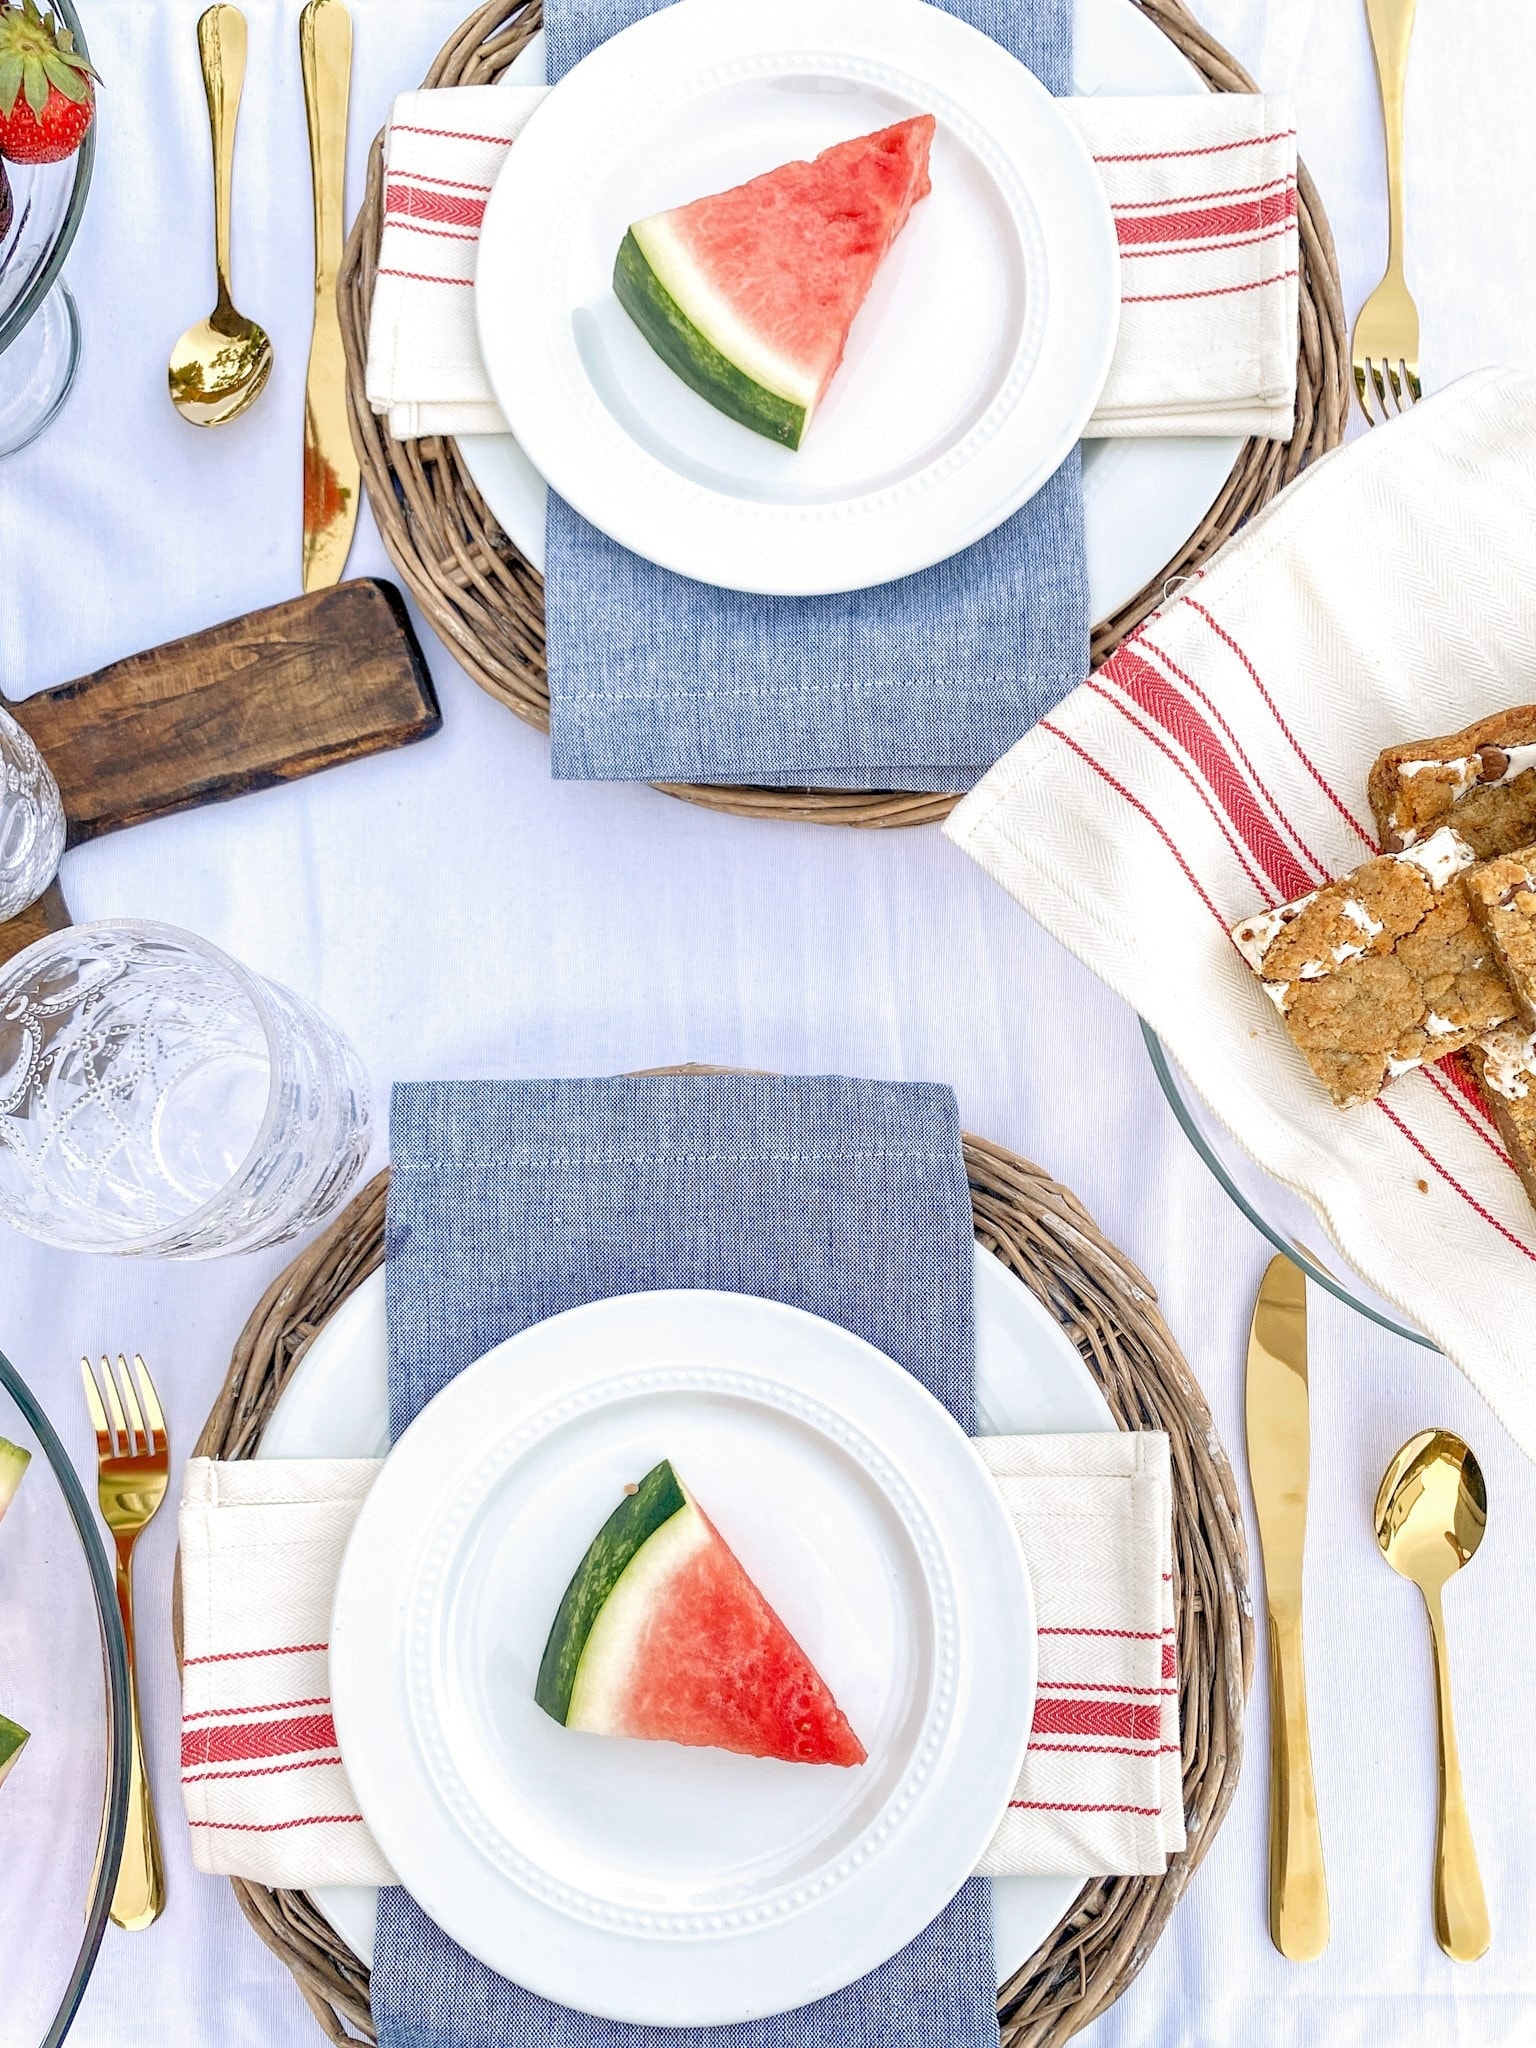 tuesday turn about 105 tablescape blue red and white with watermelon slices